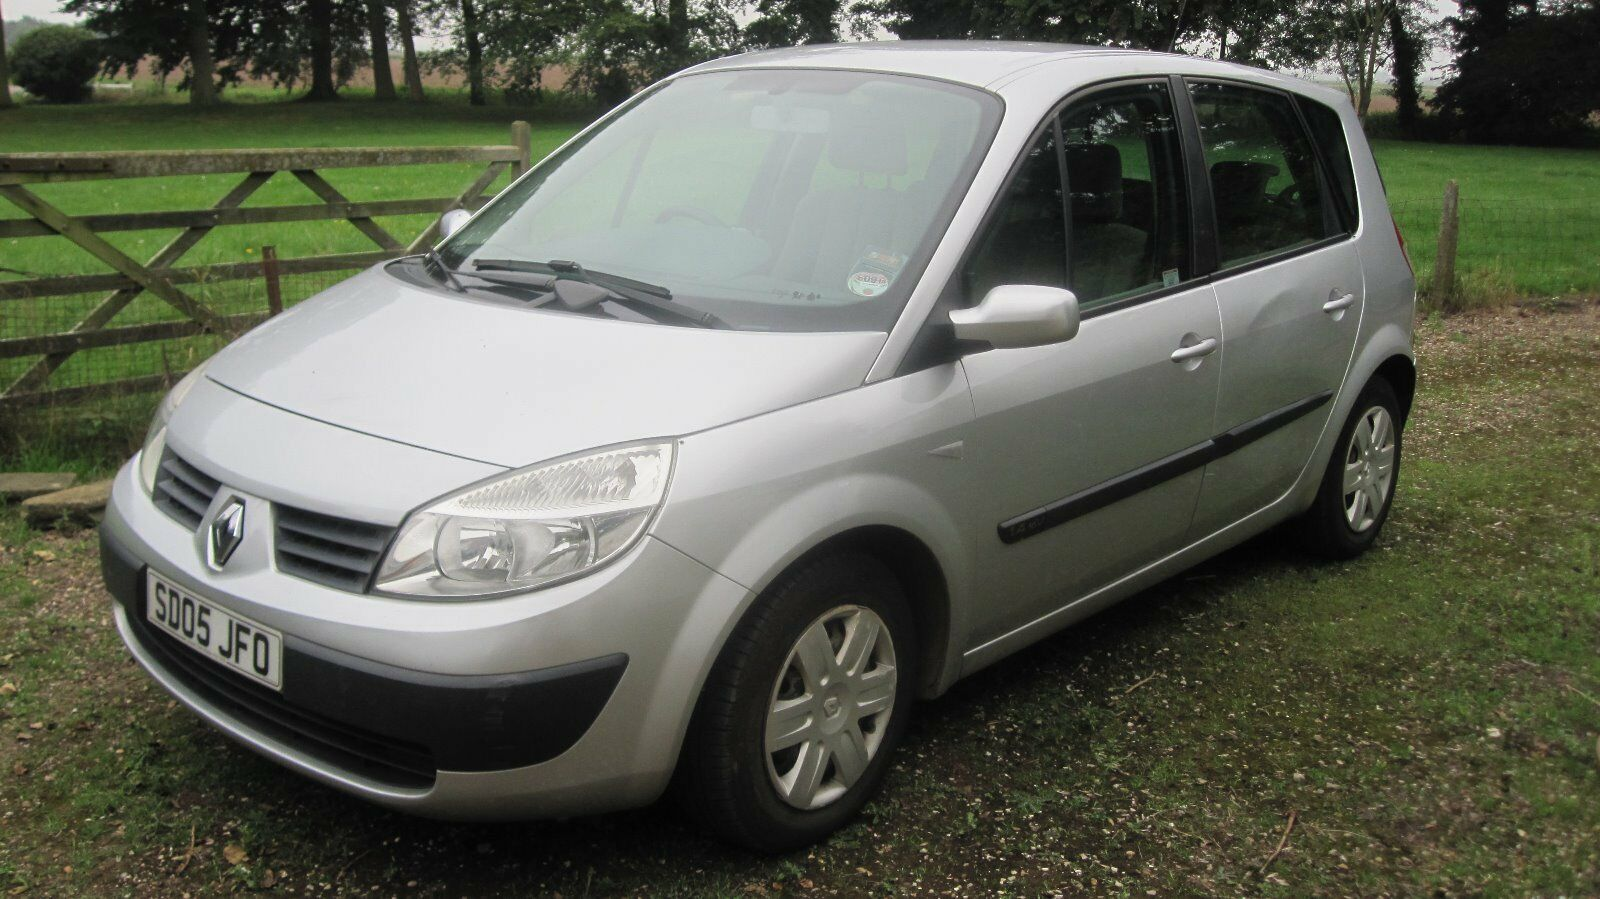 renault scenic 2005 very low mileage picclick uk. Black Bedroom Furniture Sets. Home Design Ideas